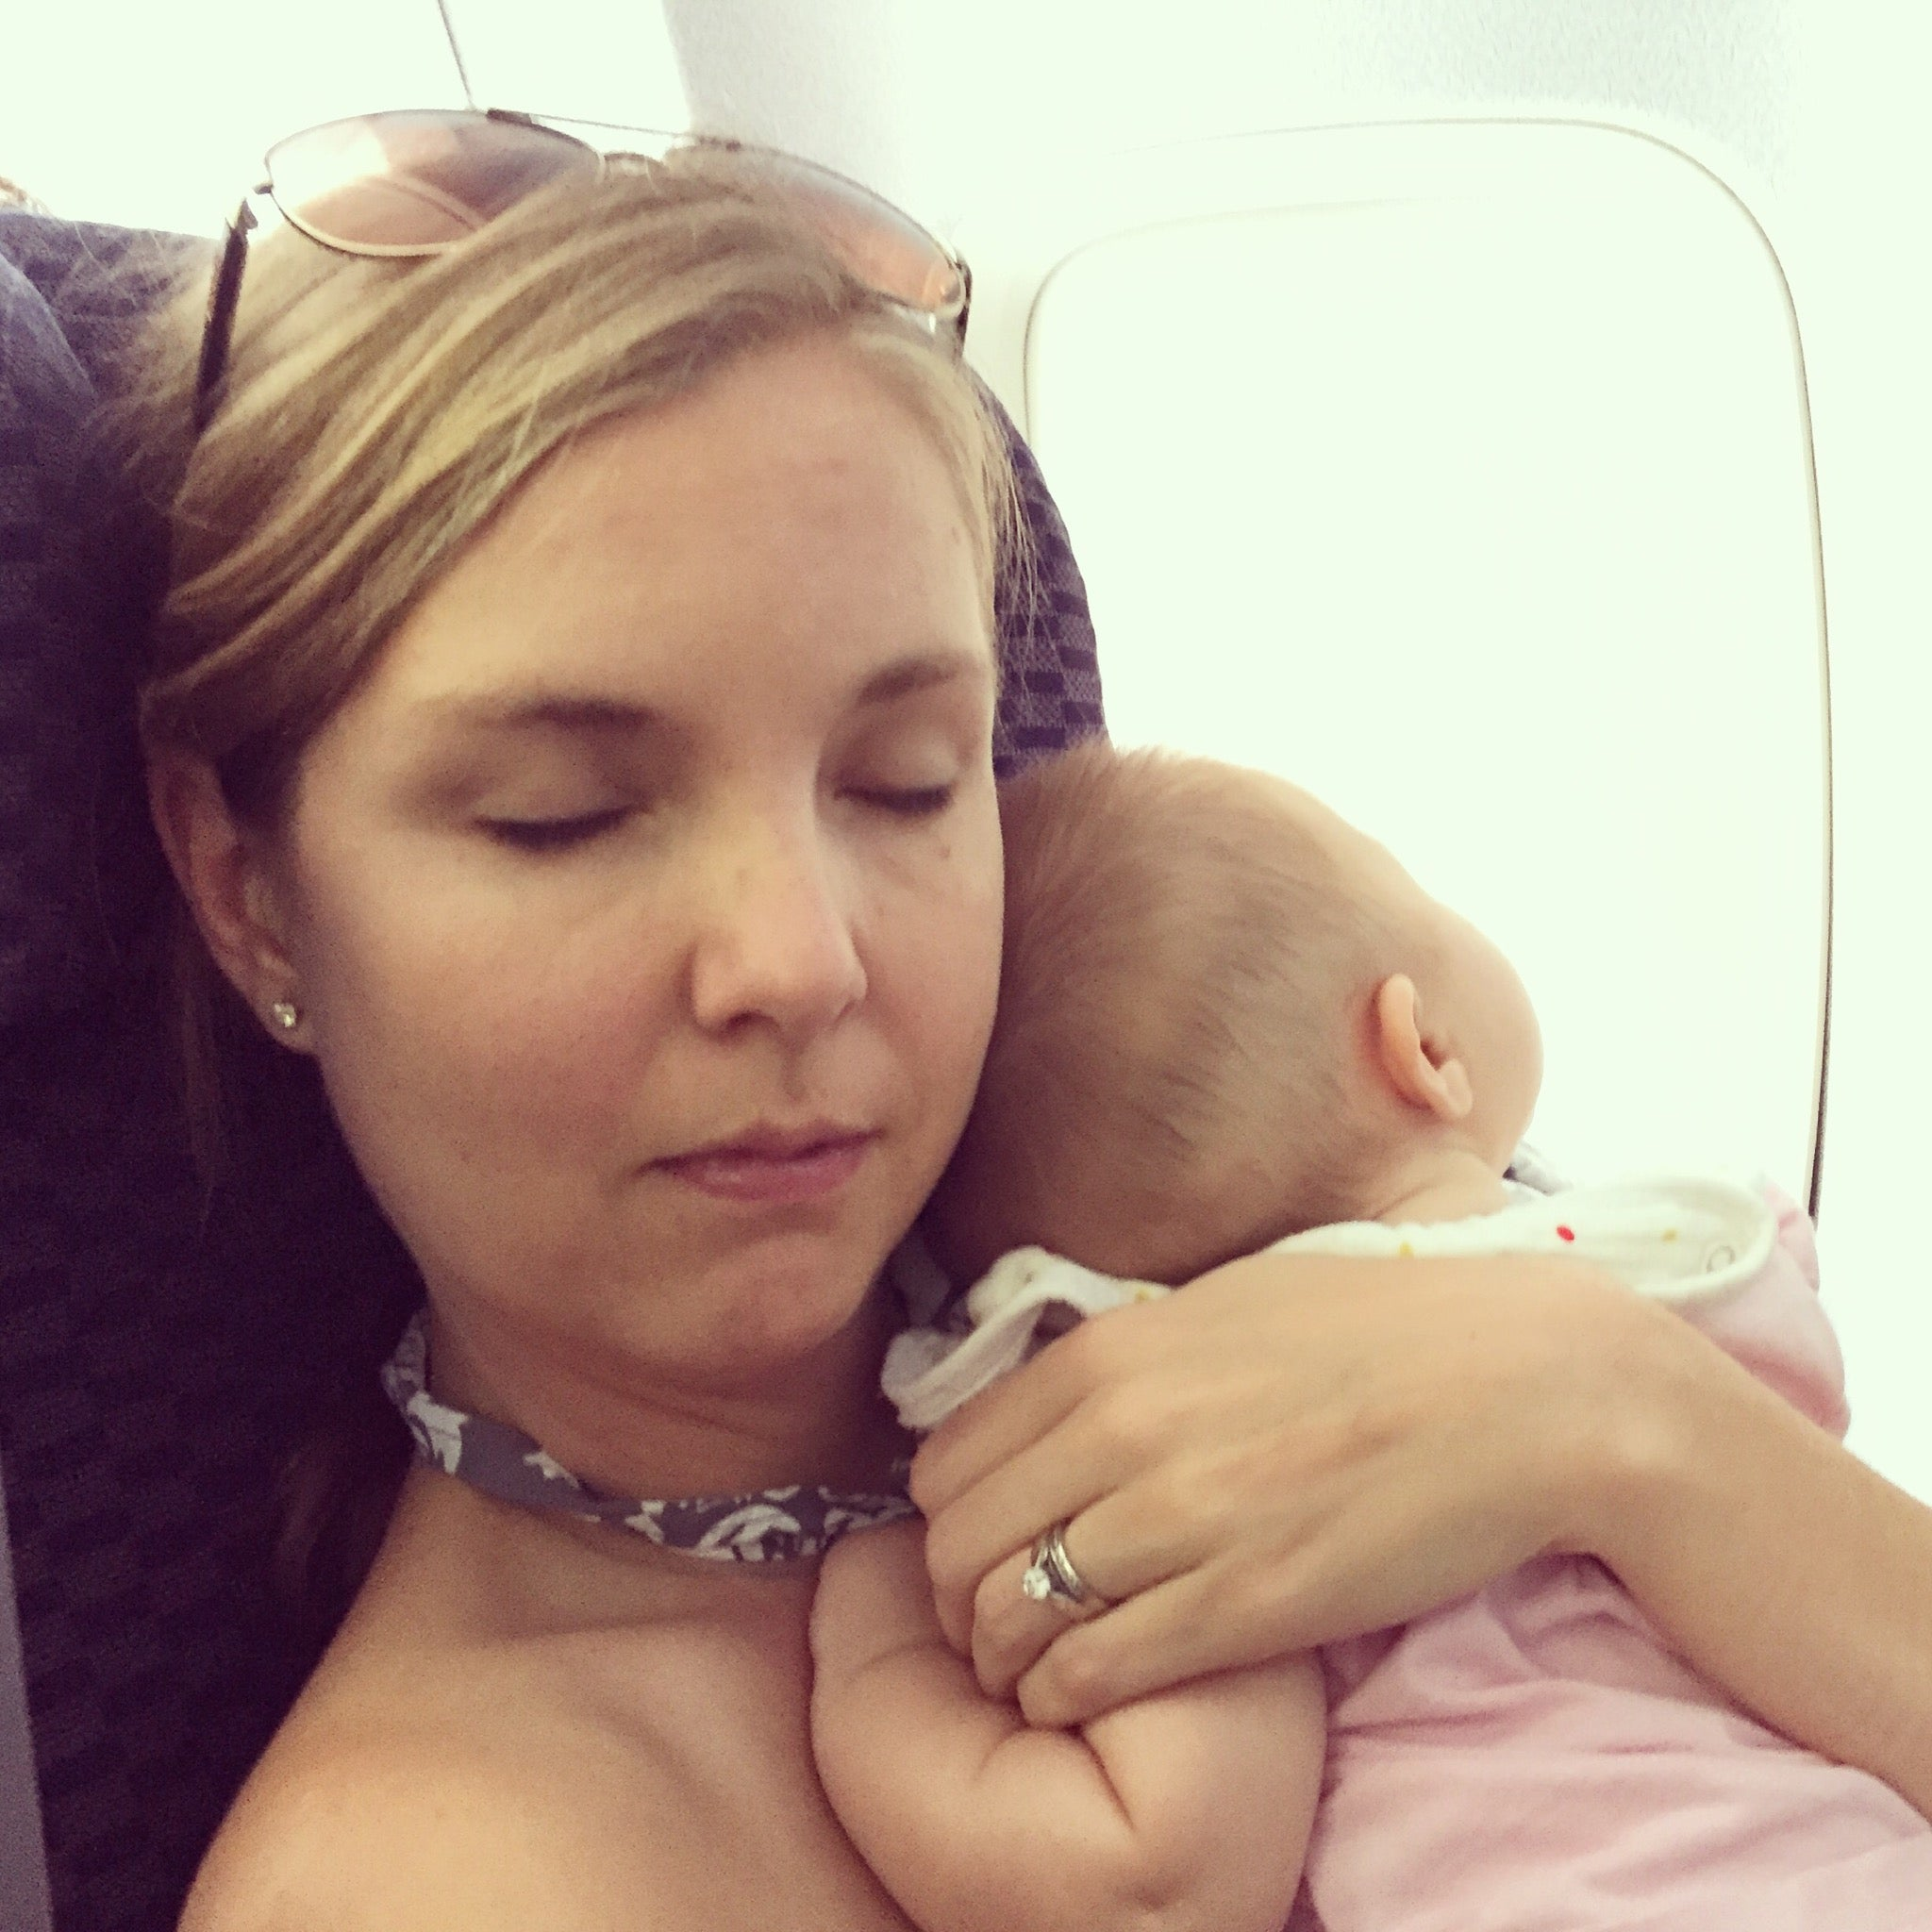 a9fc6dcbccd1 Tips for Flying With a 3 Month Old Baby – The Points Guy